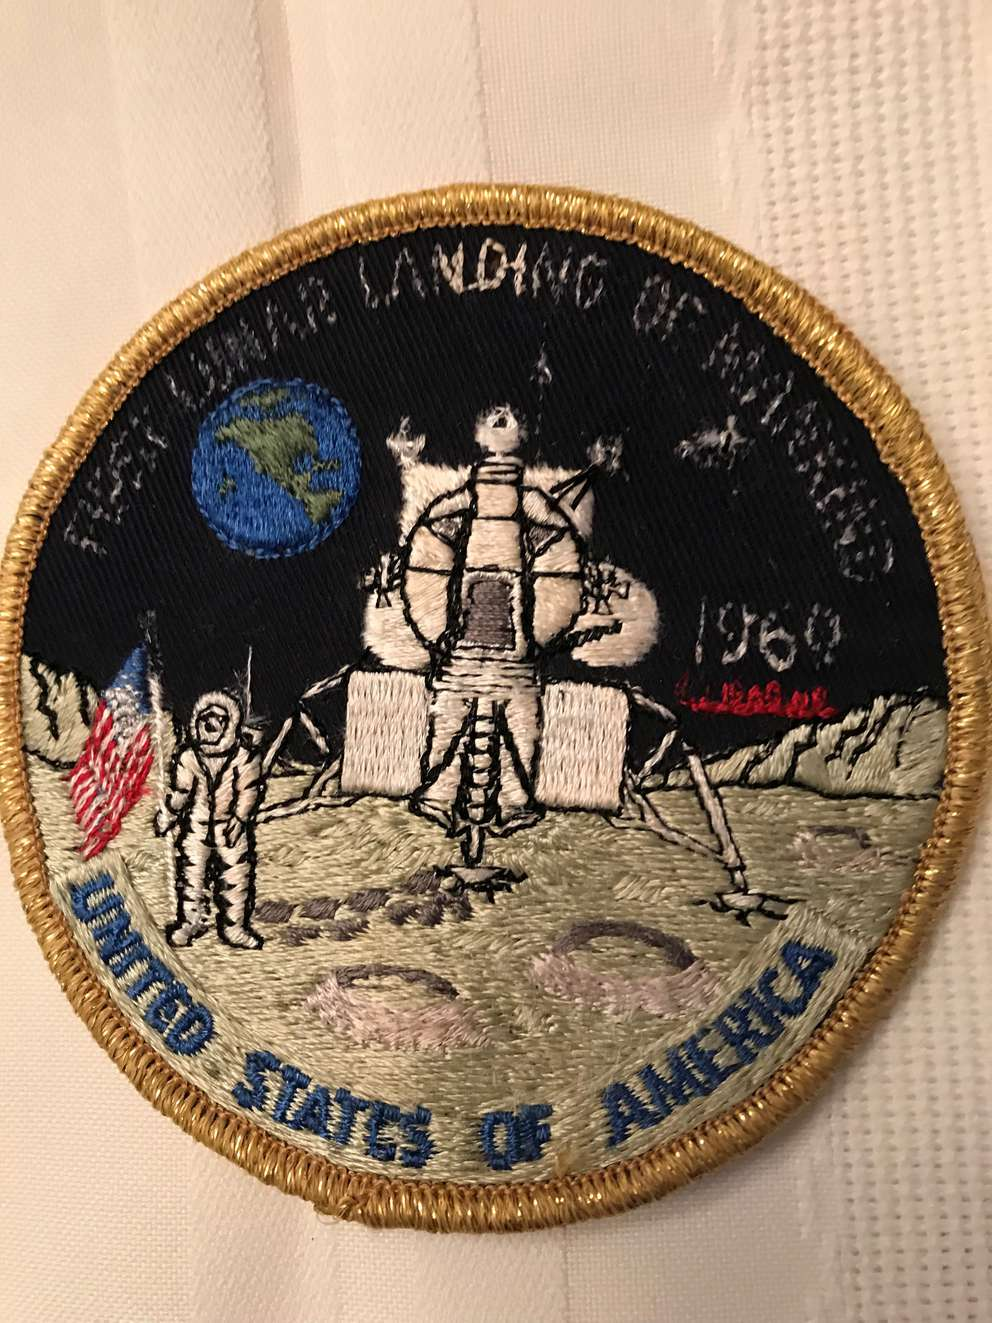 Apollo 11 patch awarded to Sun City Center resident Joe Birnbaum, who was one of the Cape Canaveral U.S. Customs inspectors who approved the entry into the United States of moon rocks collected by Apollo 11.